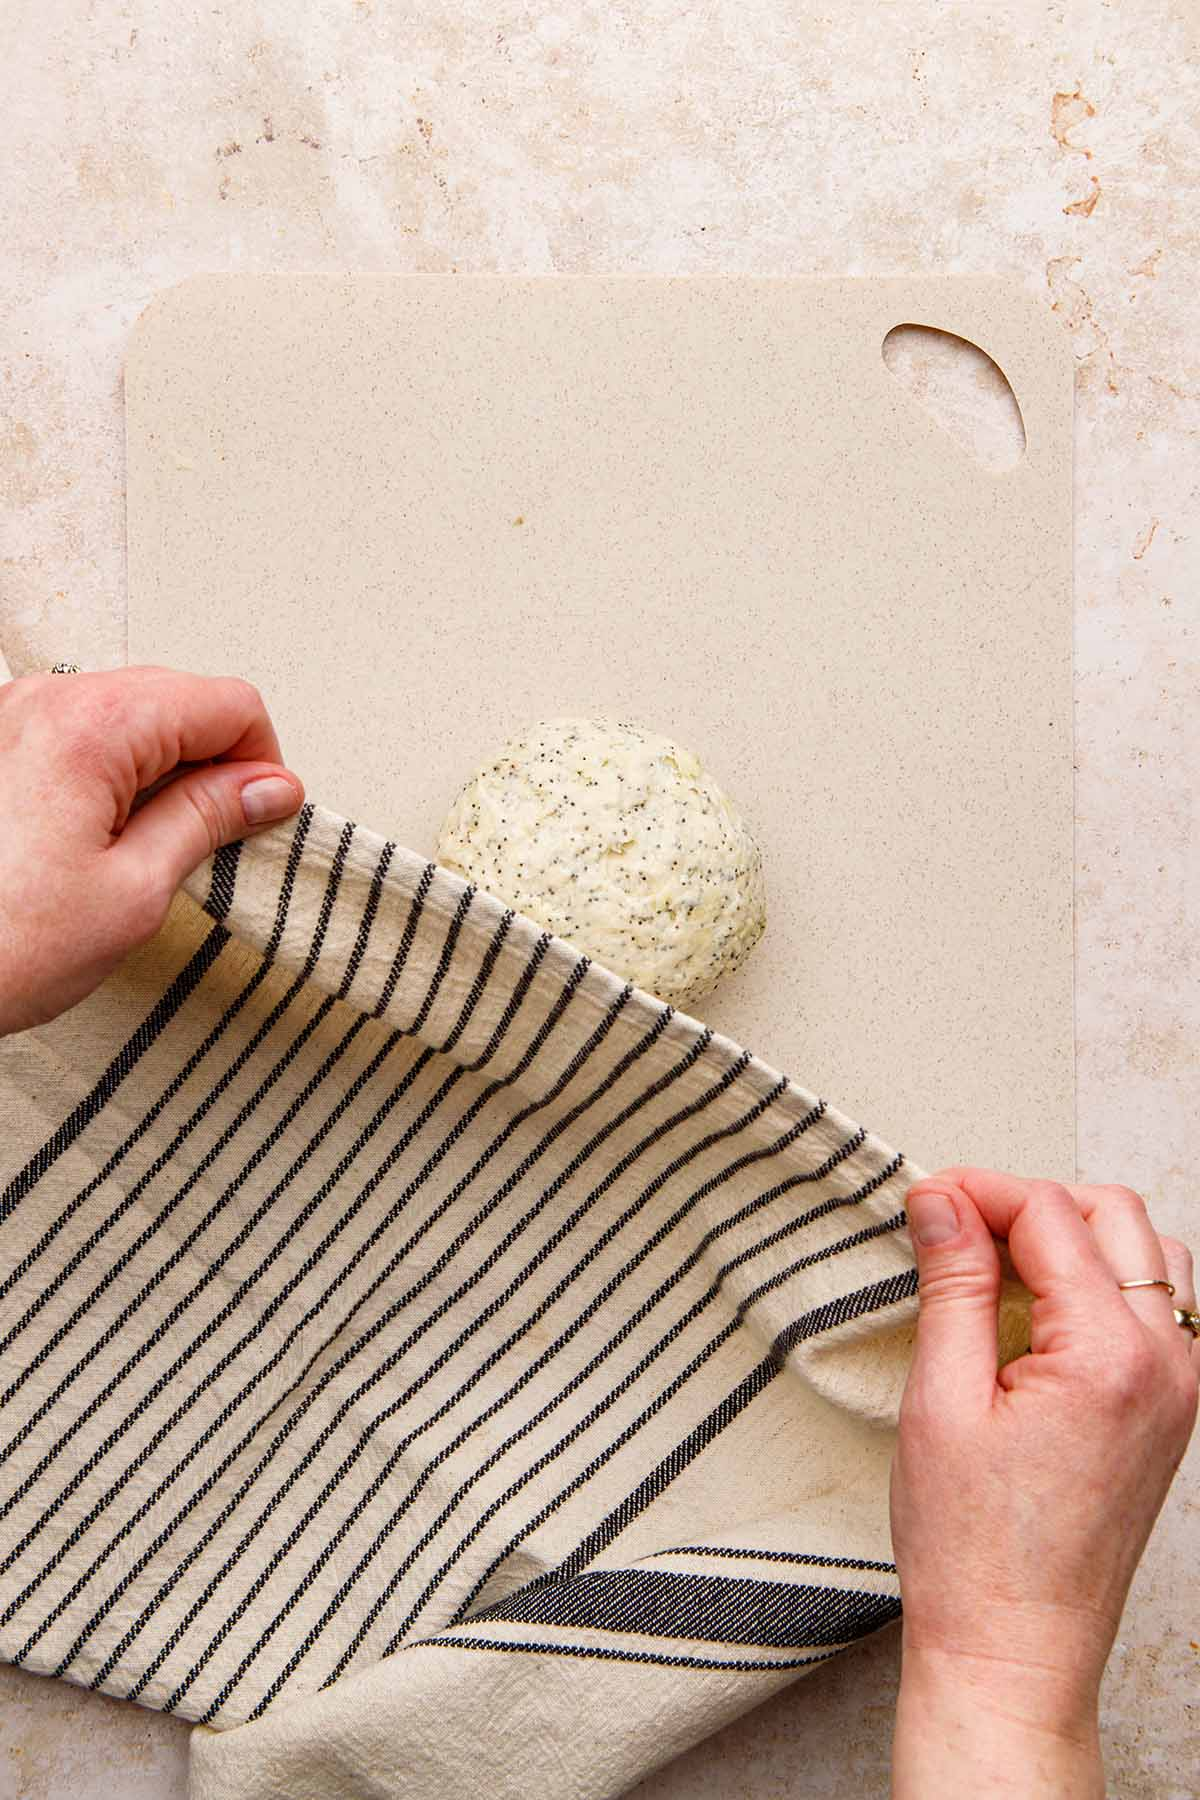 Hands covering a ball of dough with a striped tea towel.